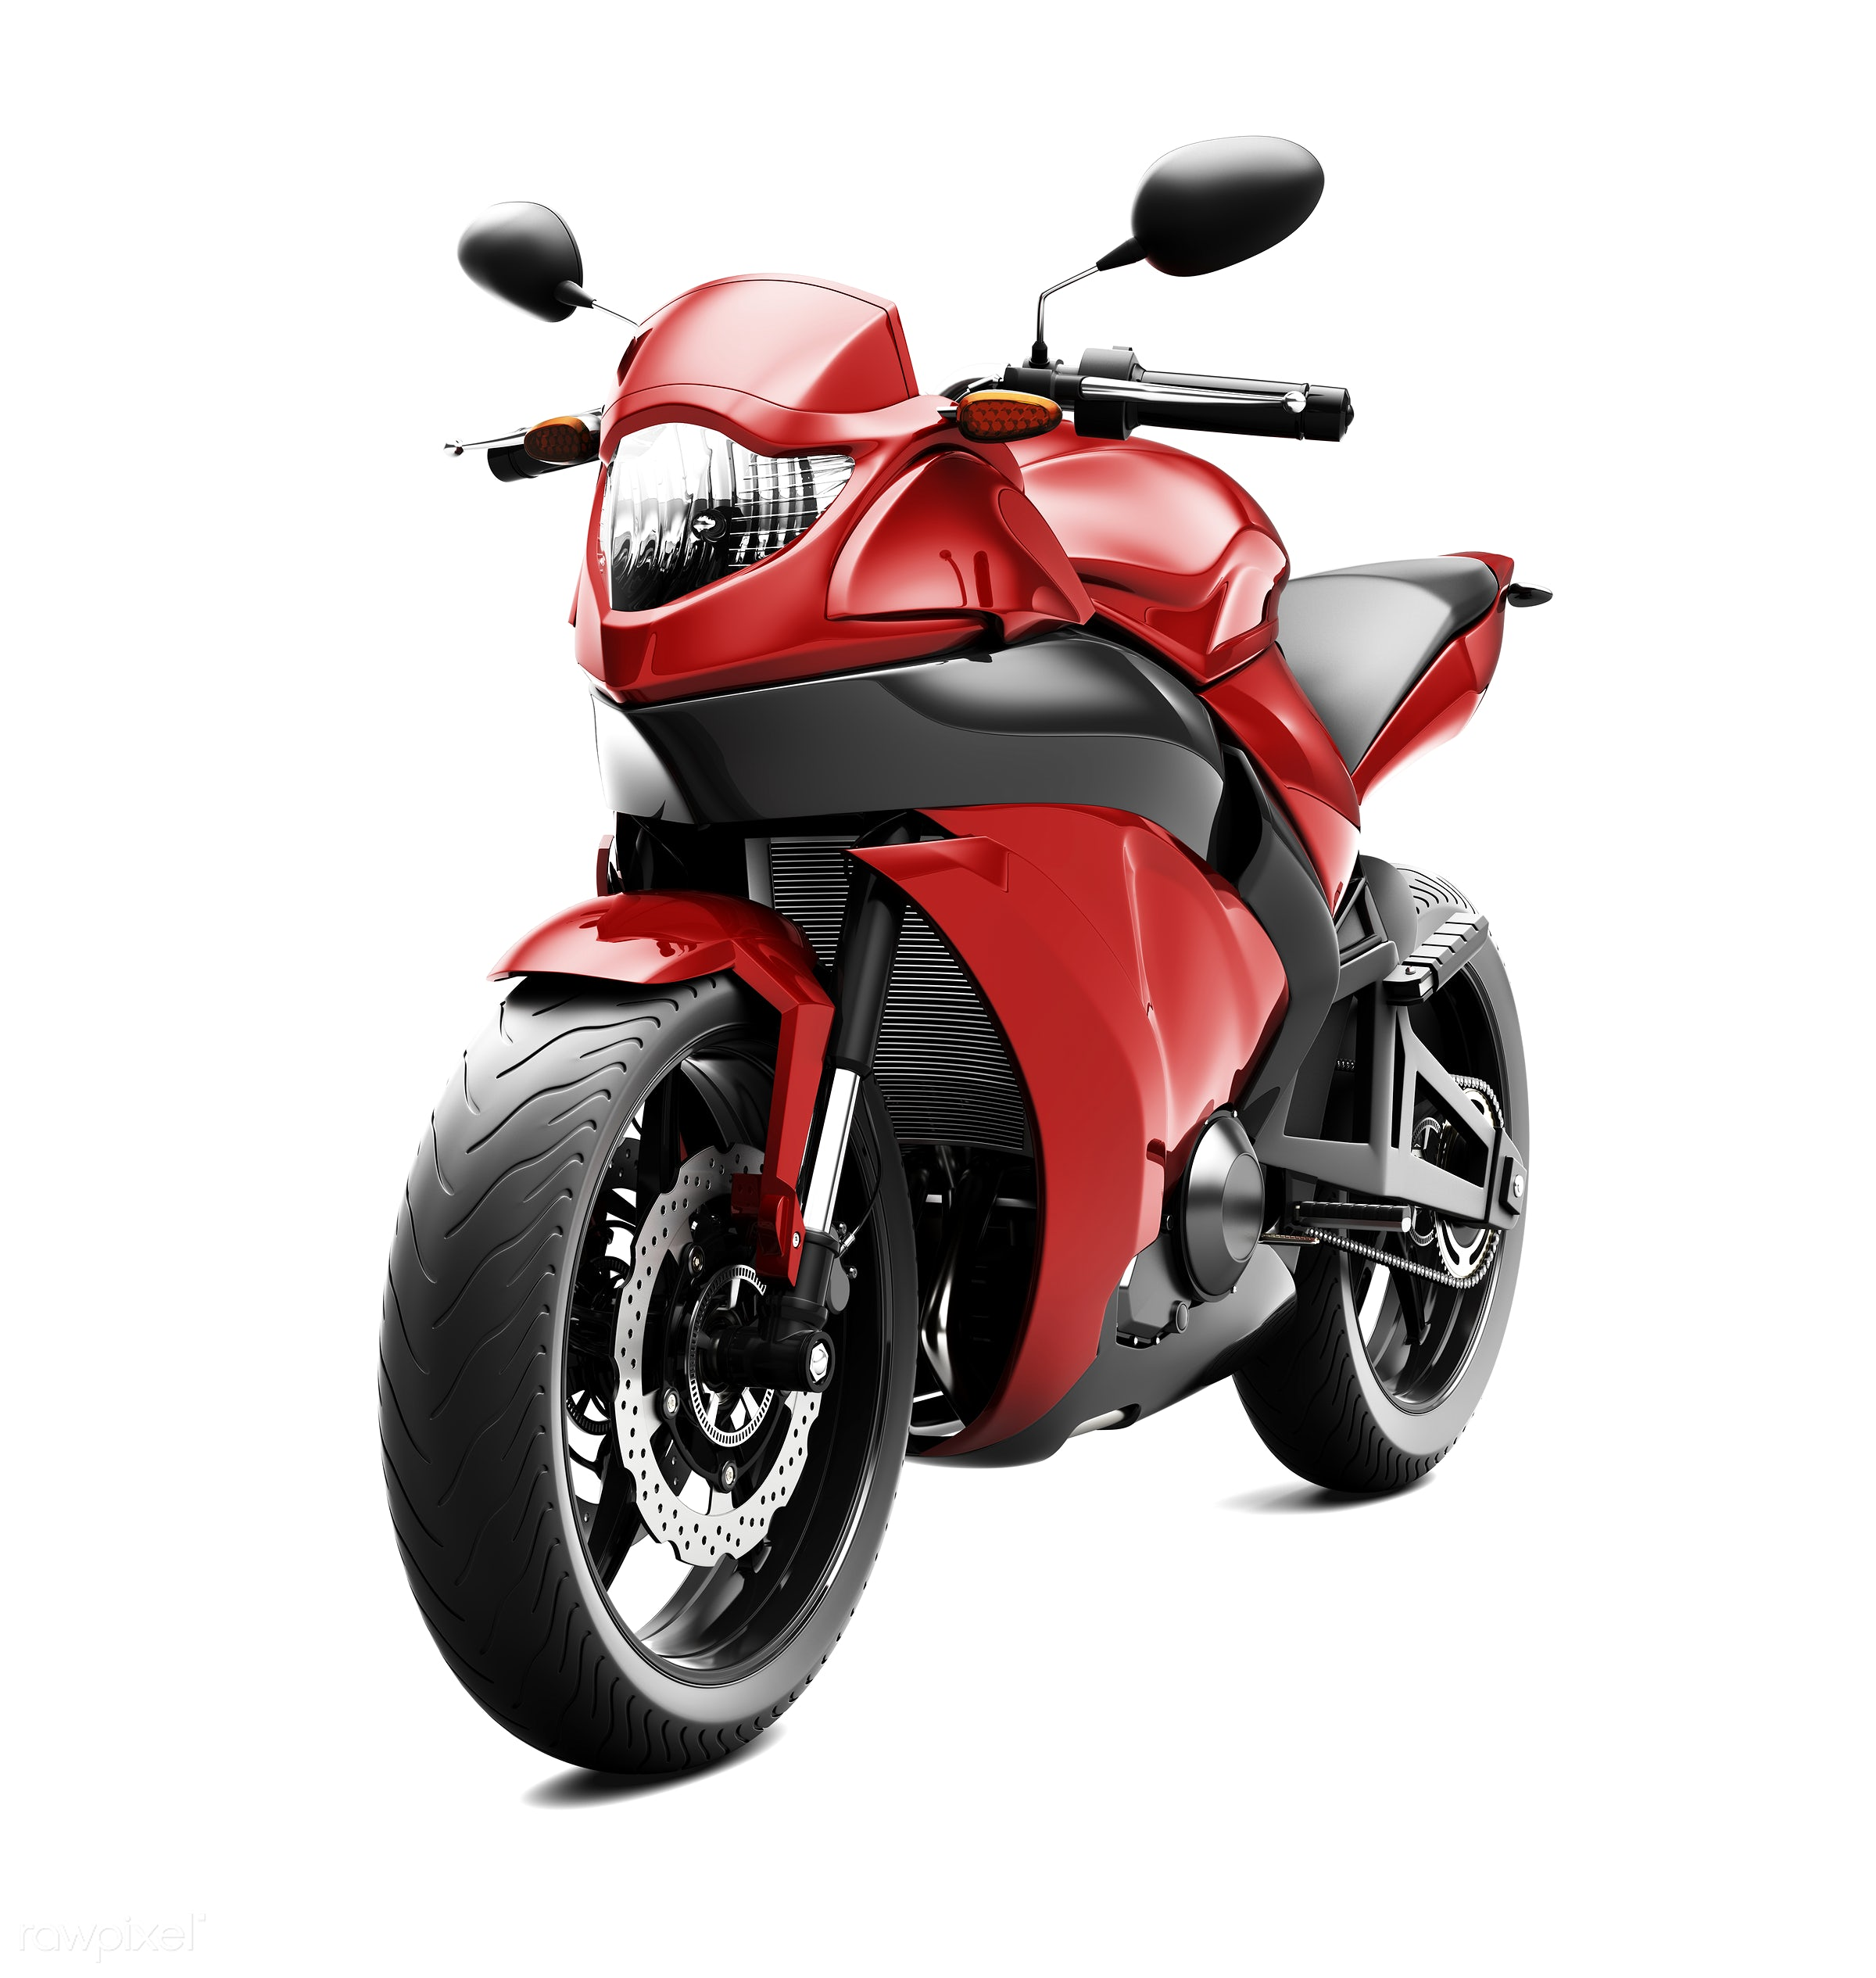 Three dimensional image of motor bike - motorcycle, 3d, automobile, automotive, bike, cool, graphic, holiday, illustration,...